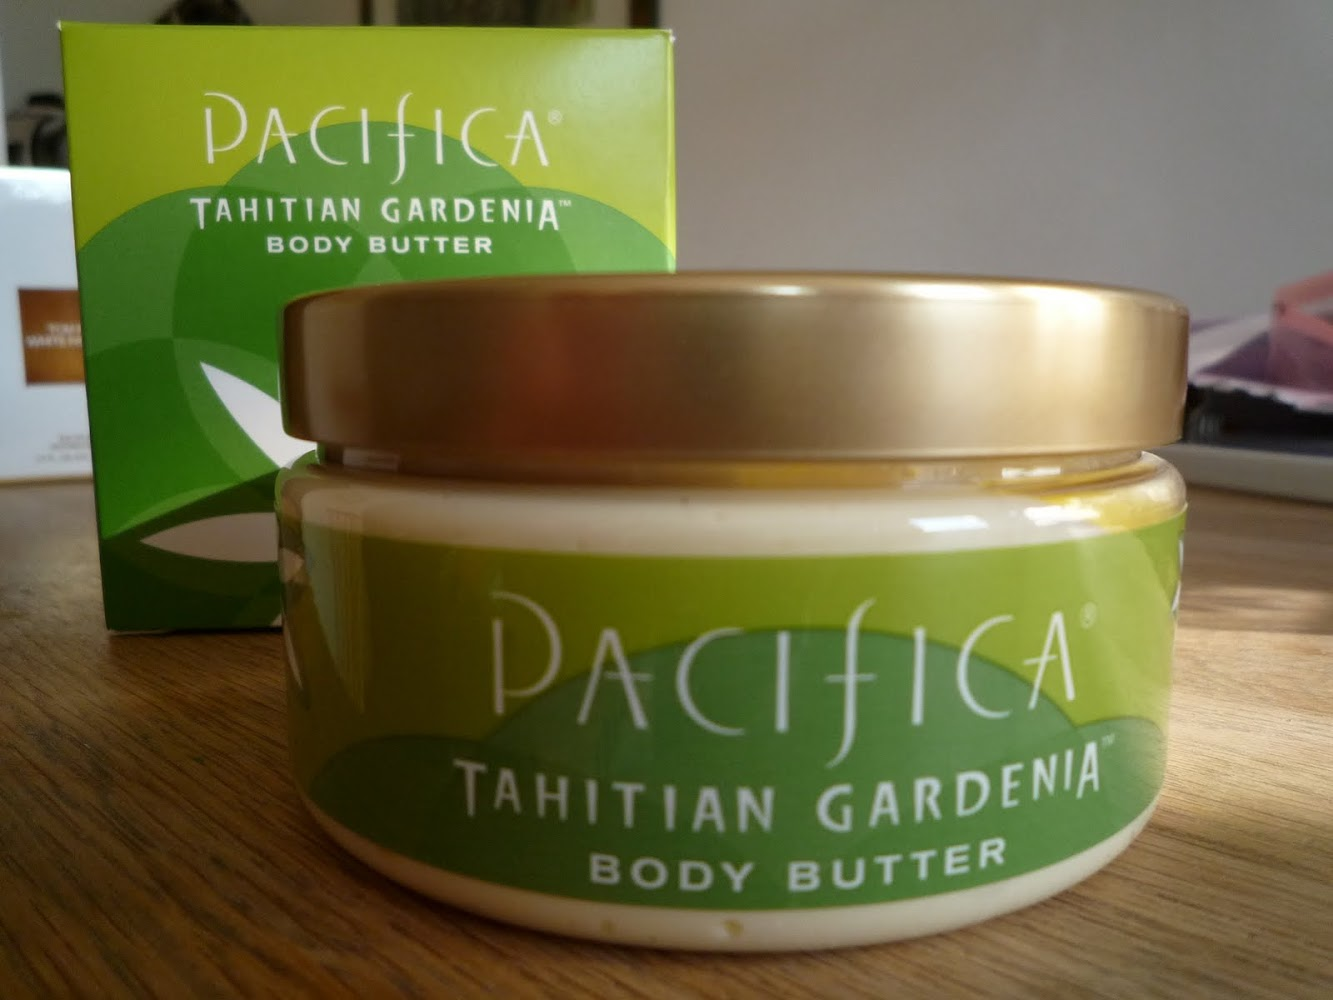 Perfume Review: Tahitian Gardenia Body Butter by Pacifica